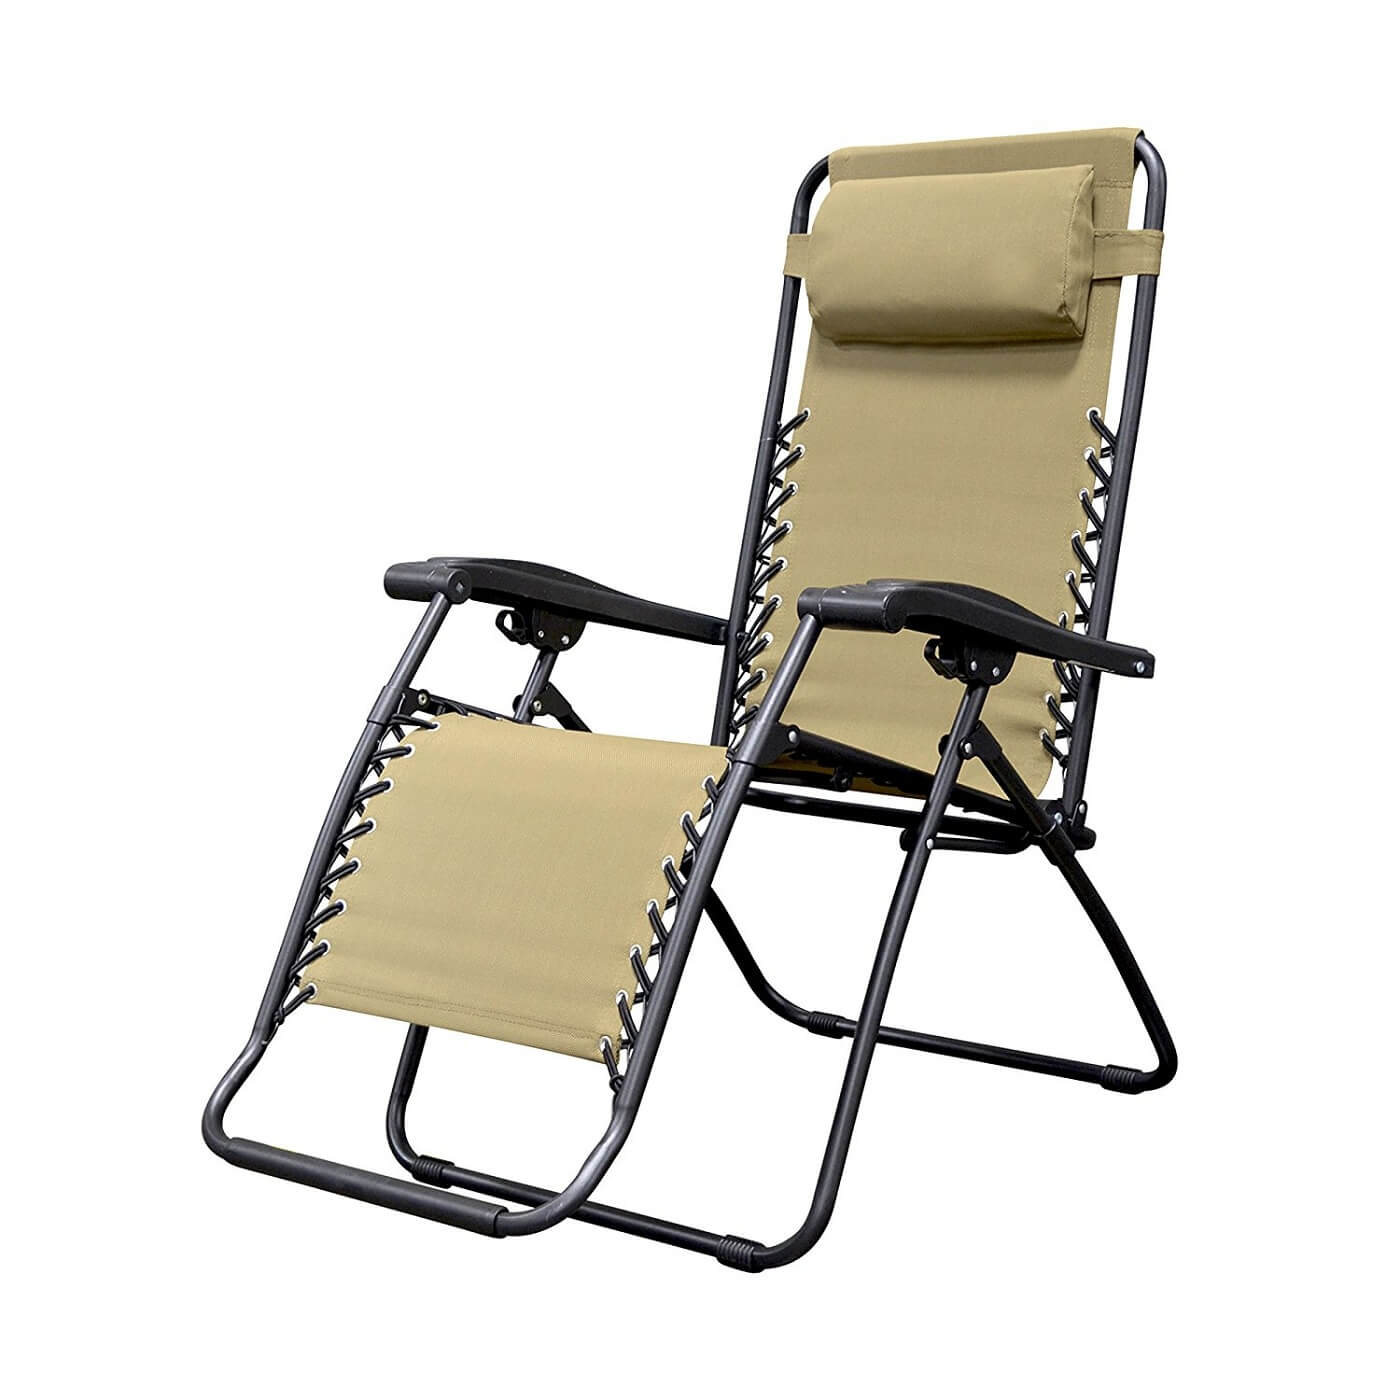 Caravan zero gravity chair reviews and buying guide in 2017 for Chair zero gravity